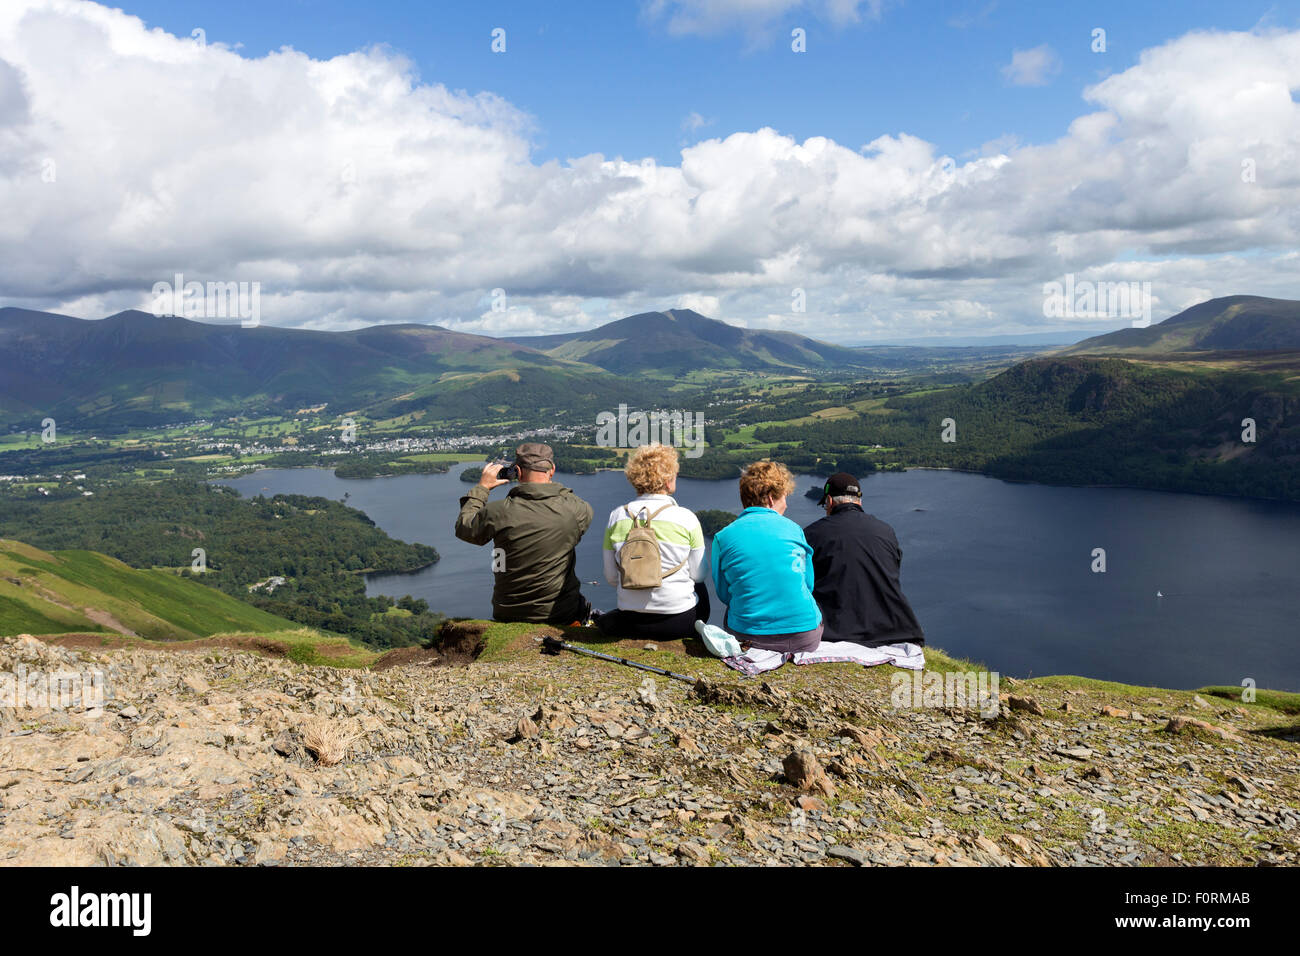 Four People Enjoying the View Across Derwent Water from the Summit of Catbells, Lake District Cumbria UK - Stock Image